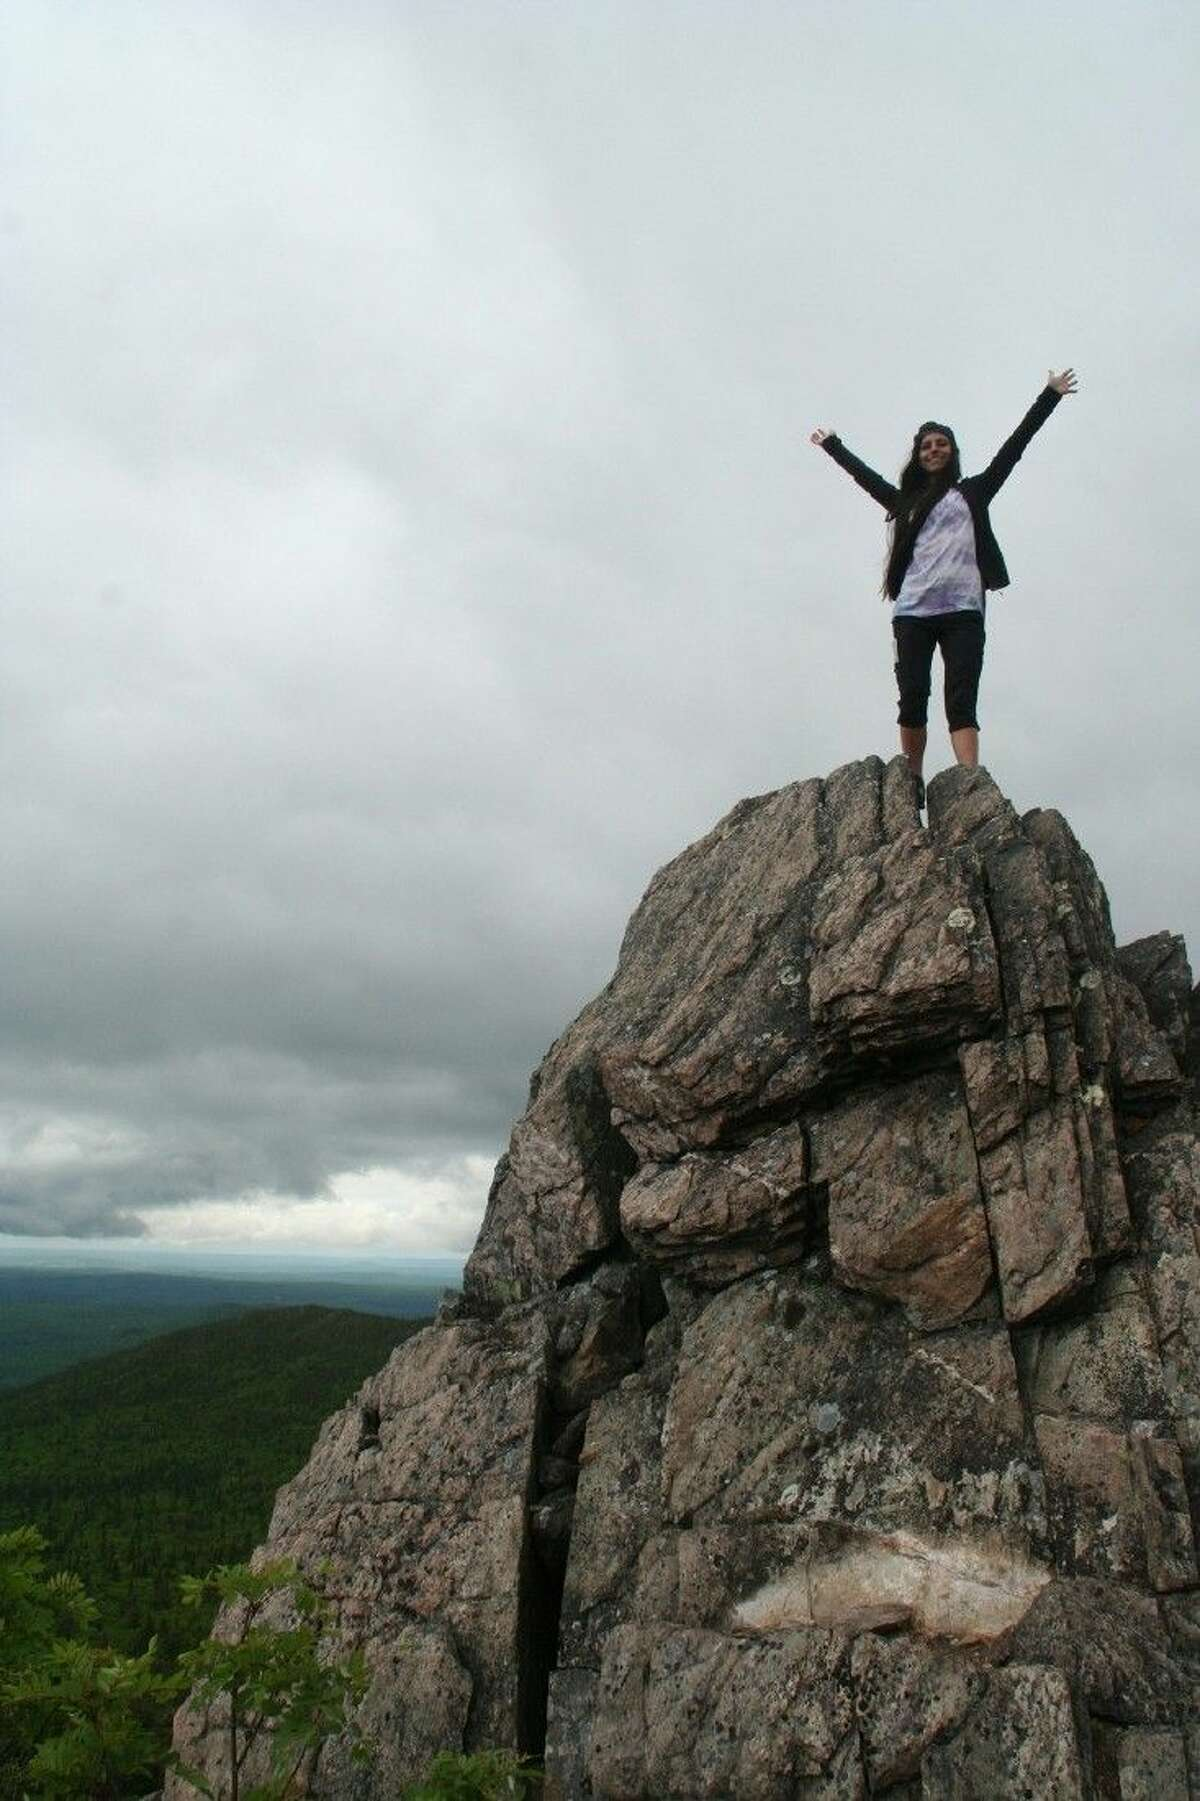 College of the Mainland student Stephanie Najera scaled peaks on a study abroad trip funded by the North American Mobility Grant. She and her classmates explored Canadian geology on a study abroad trip funded by the North American Mobility grant.